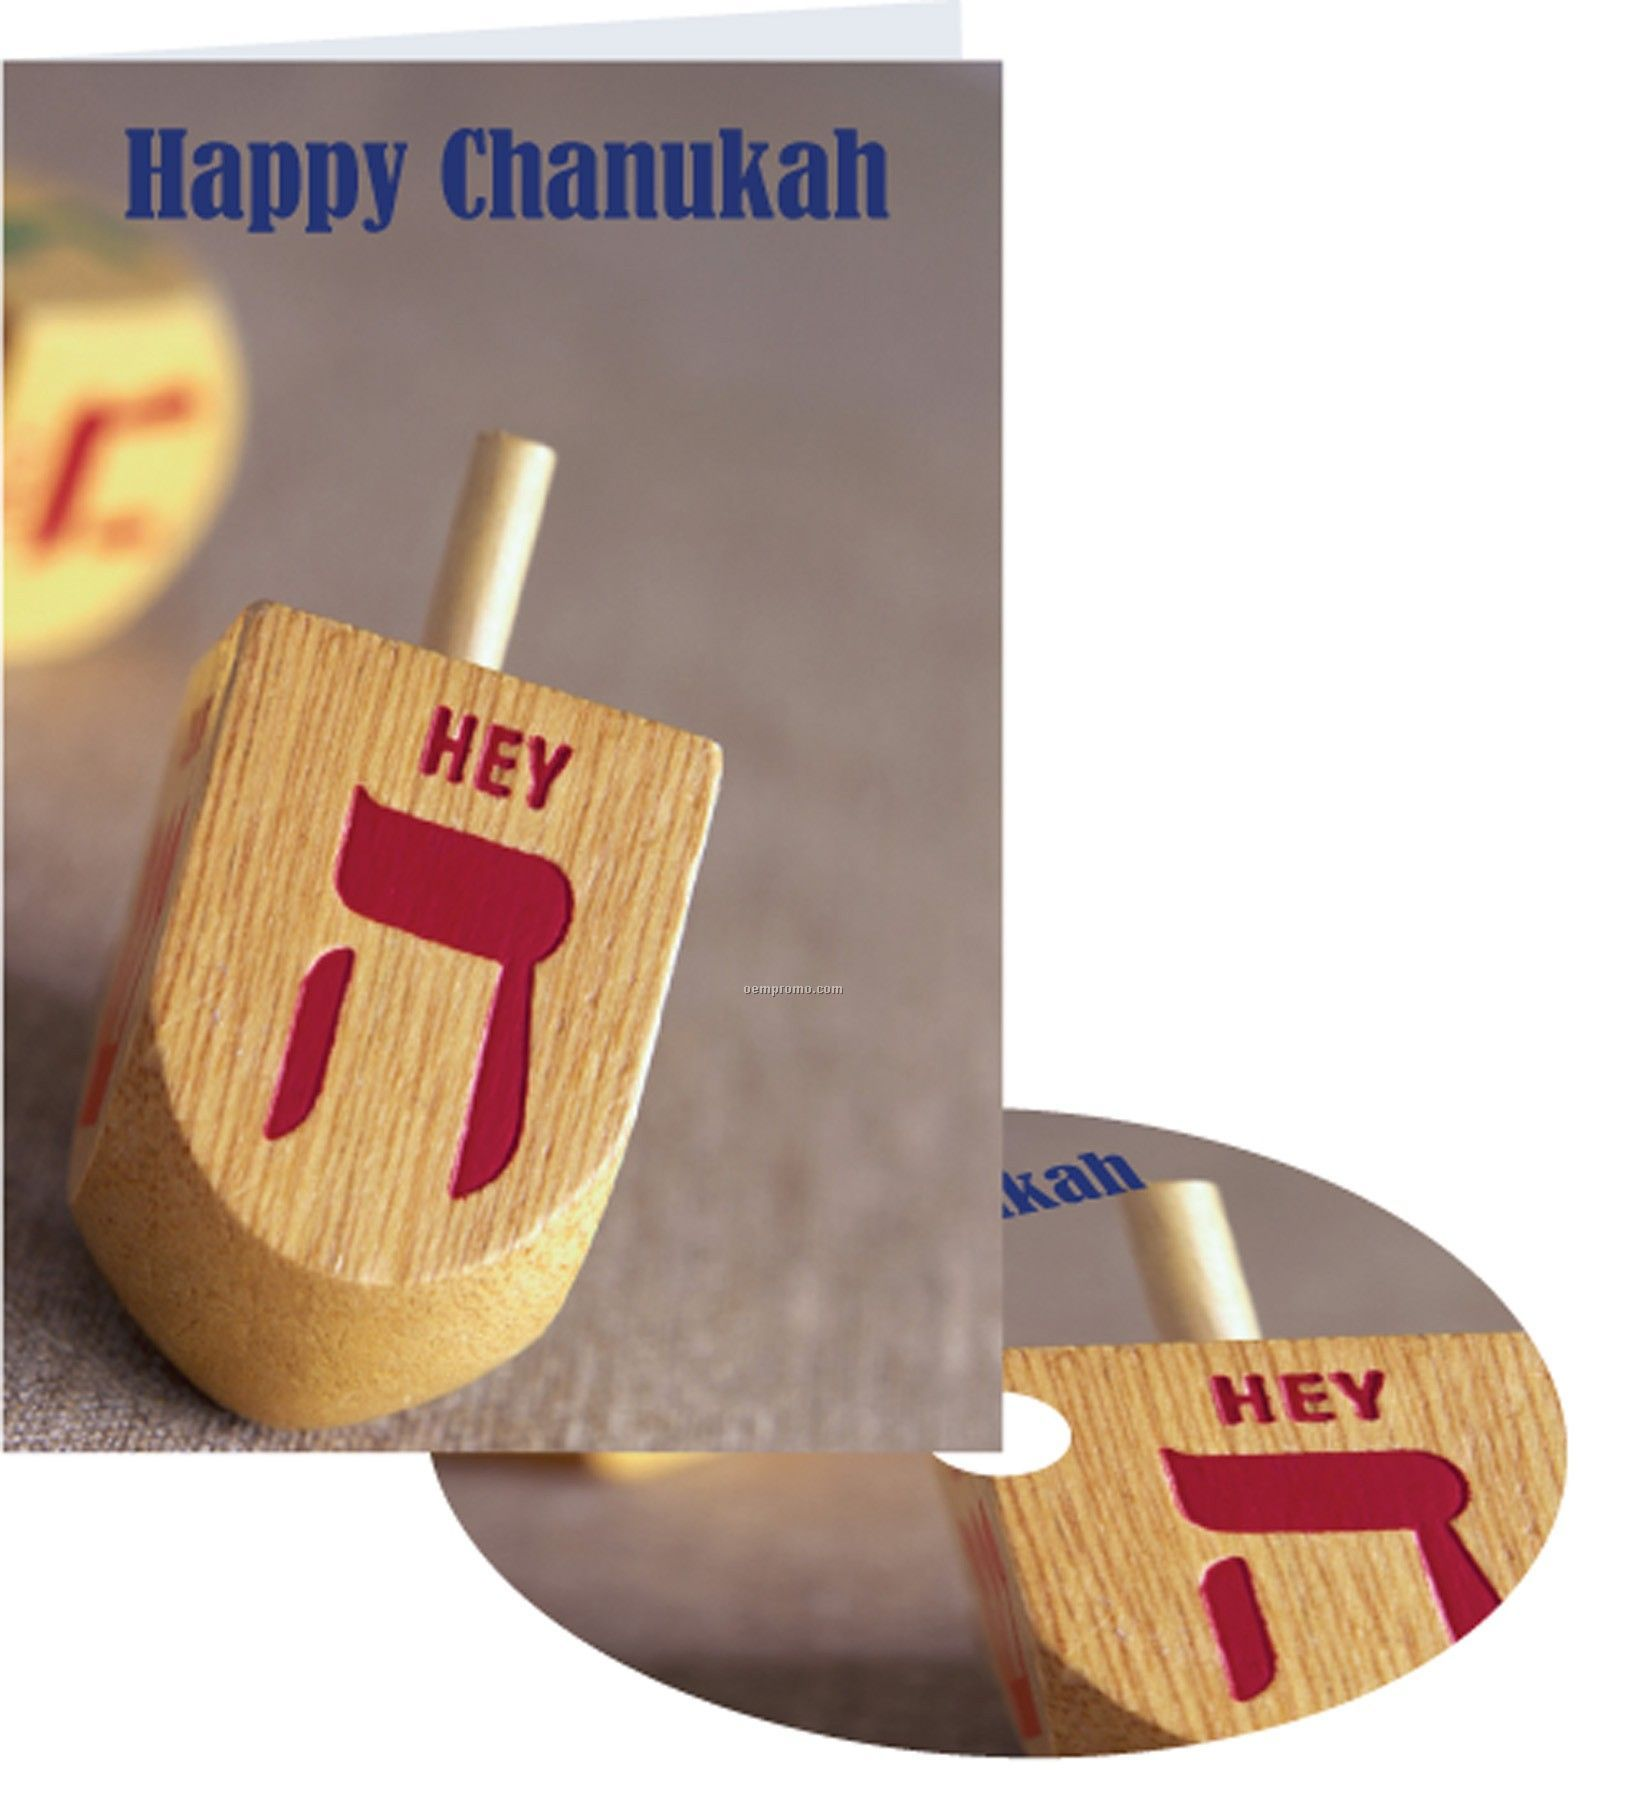 Happy Chanukah Greeting Card With Matching CD